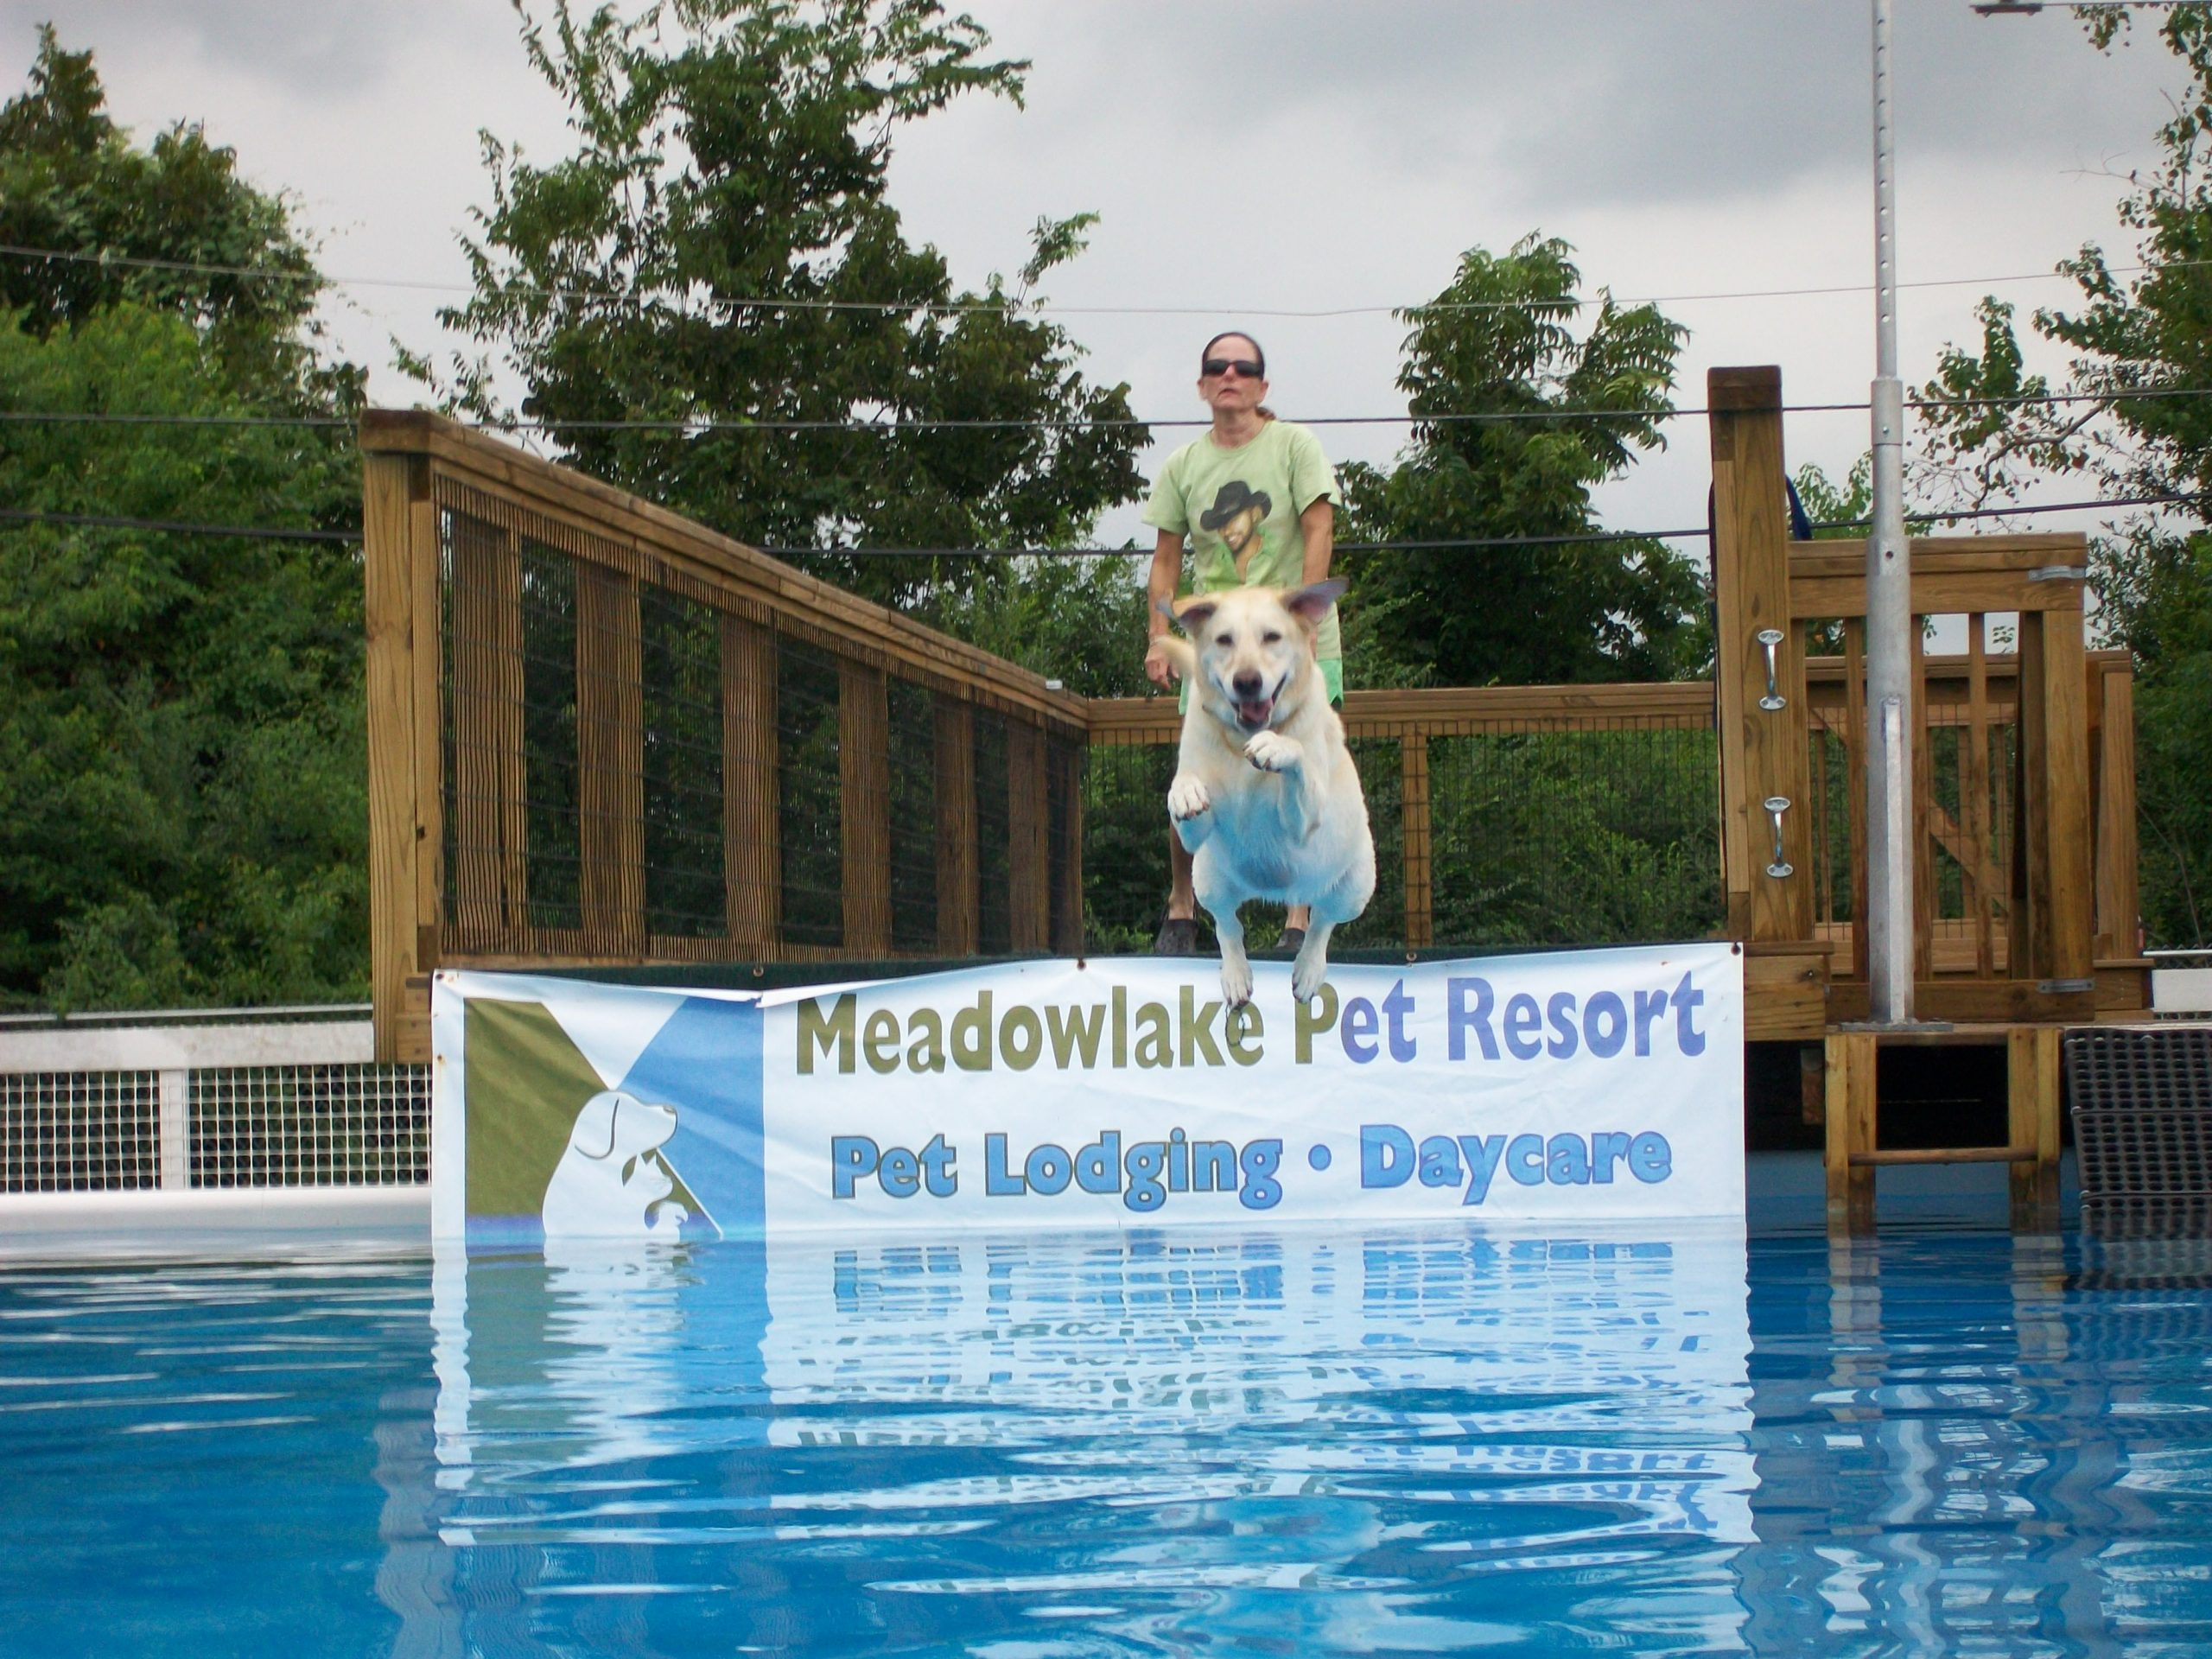 Meadowlake Pet Resort Offers Dock Dogs Training